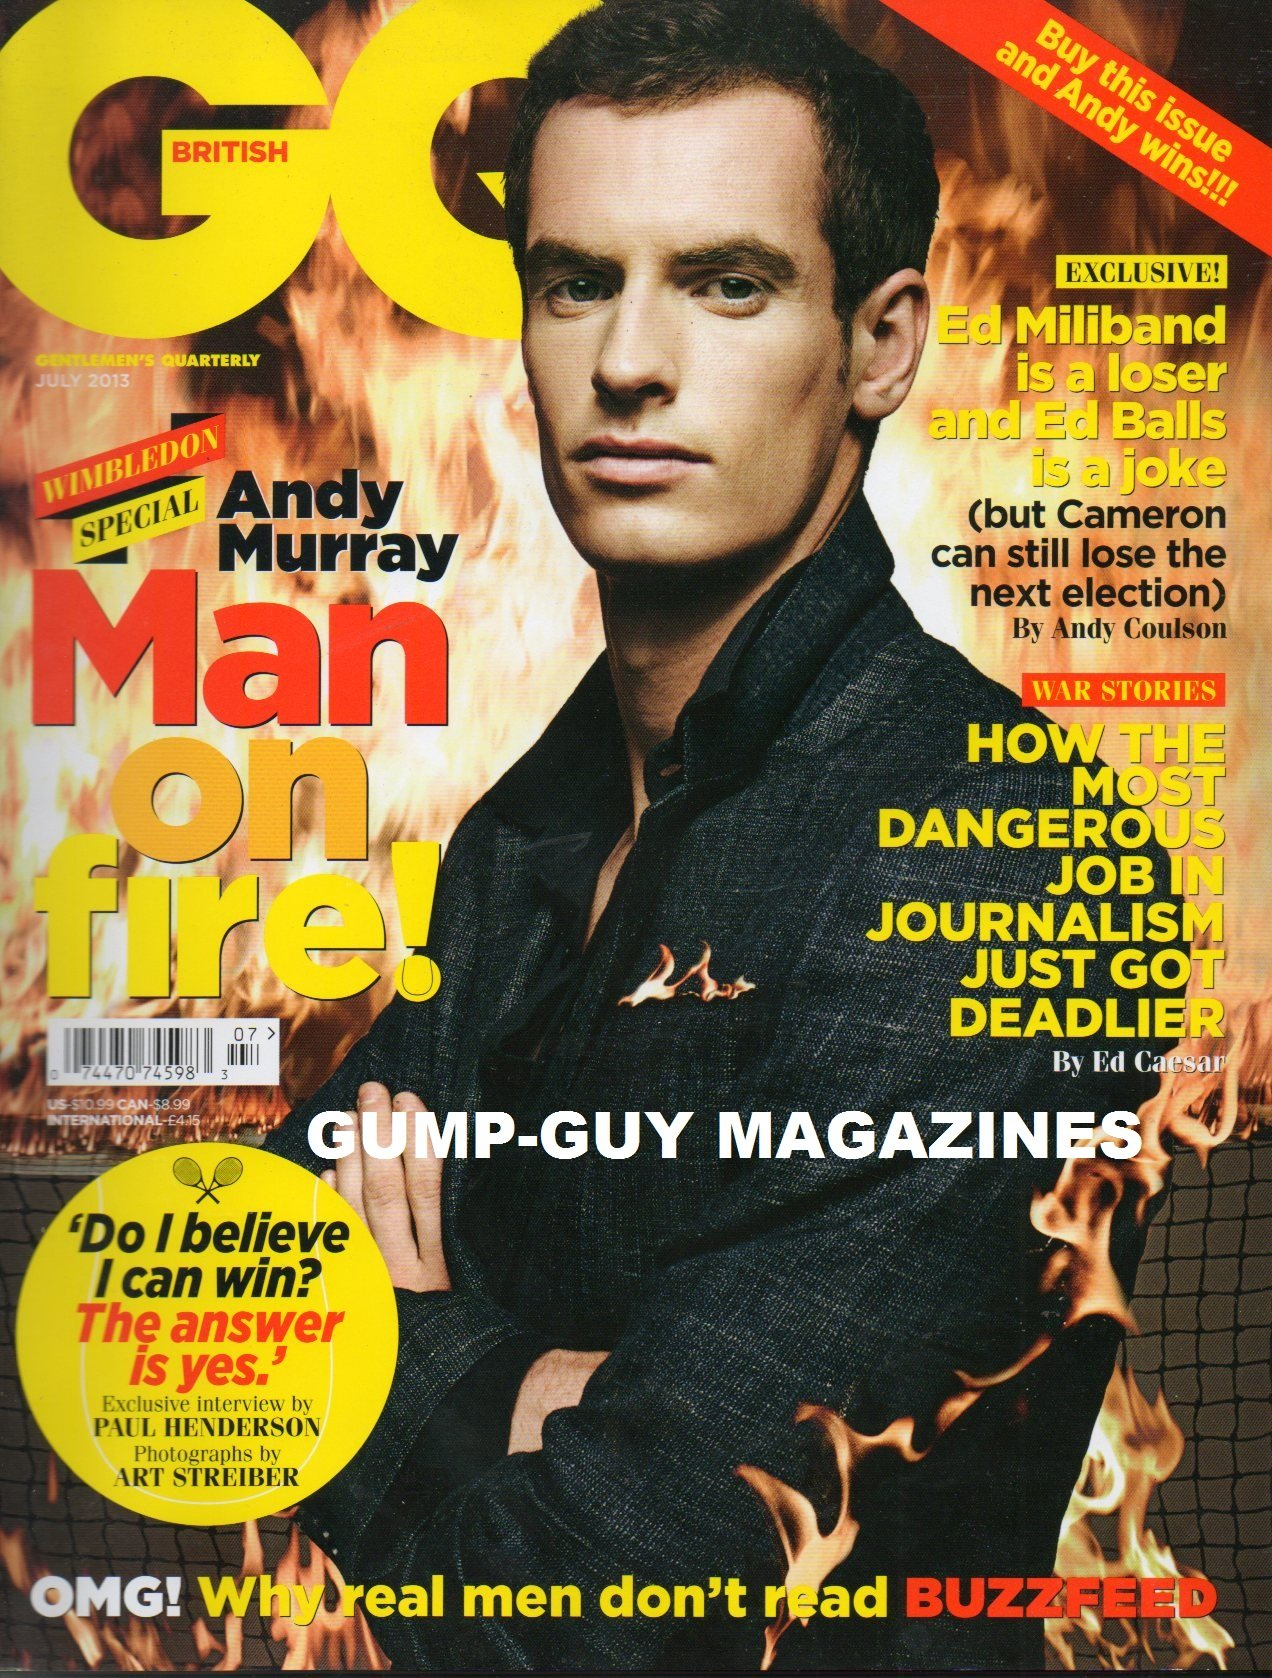 Download GQ BRITISH July 2013 Magazine MAN ON FIRE! WIMBLEDON SPECIAL ANDY MURRAY Ed Miliband Is A Loser & Ed Balls Is A Joke pdf